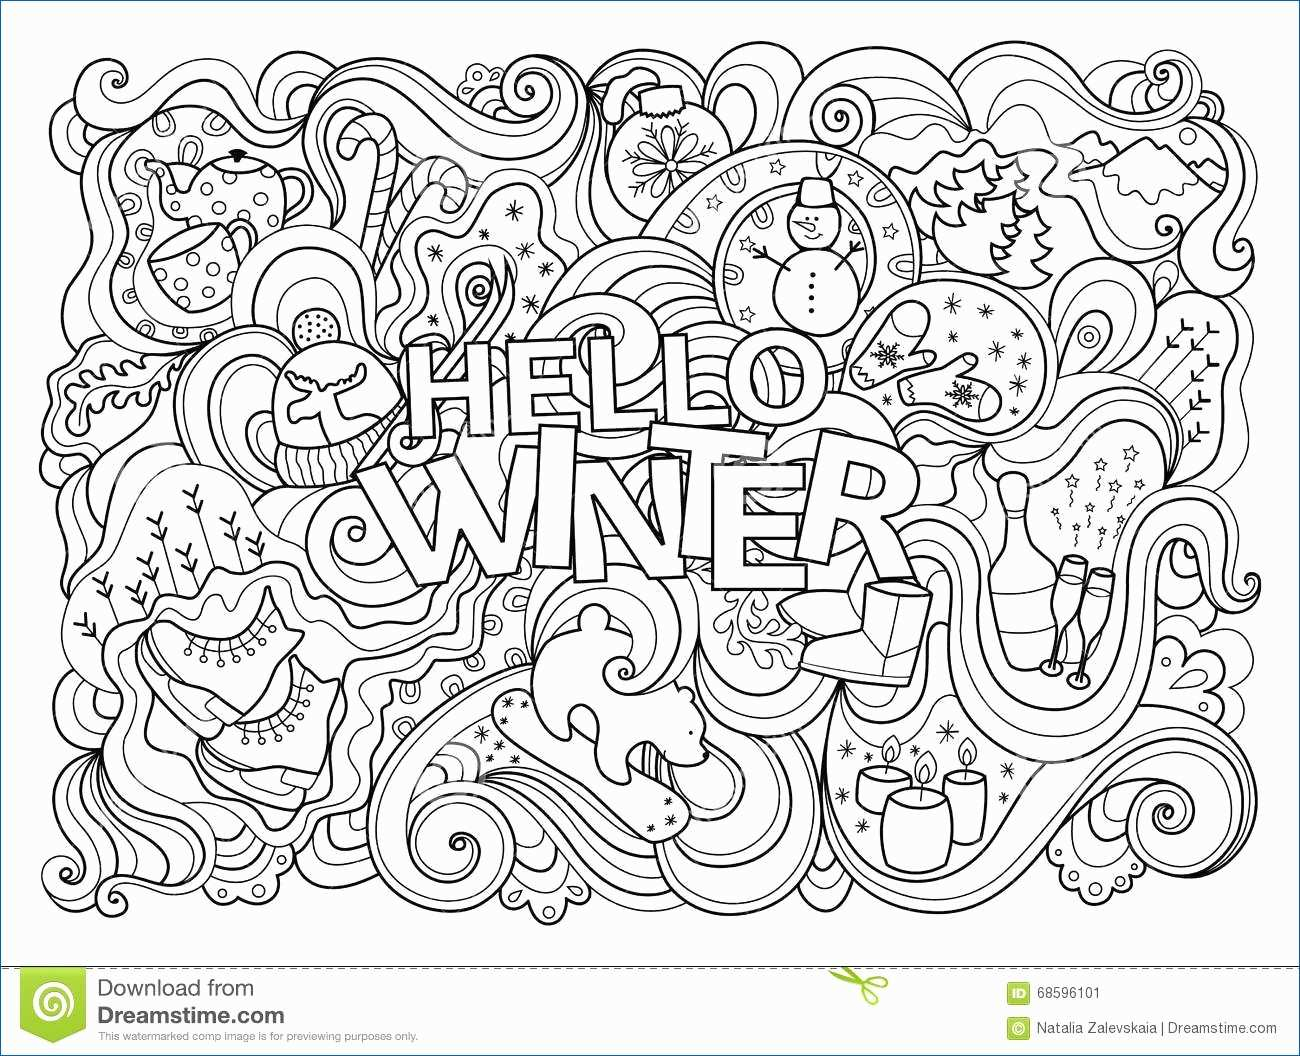 Winter Coloring Pages Printable Cooloring Book Free Winter Coloring Pages For Kids Amazing Scene